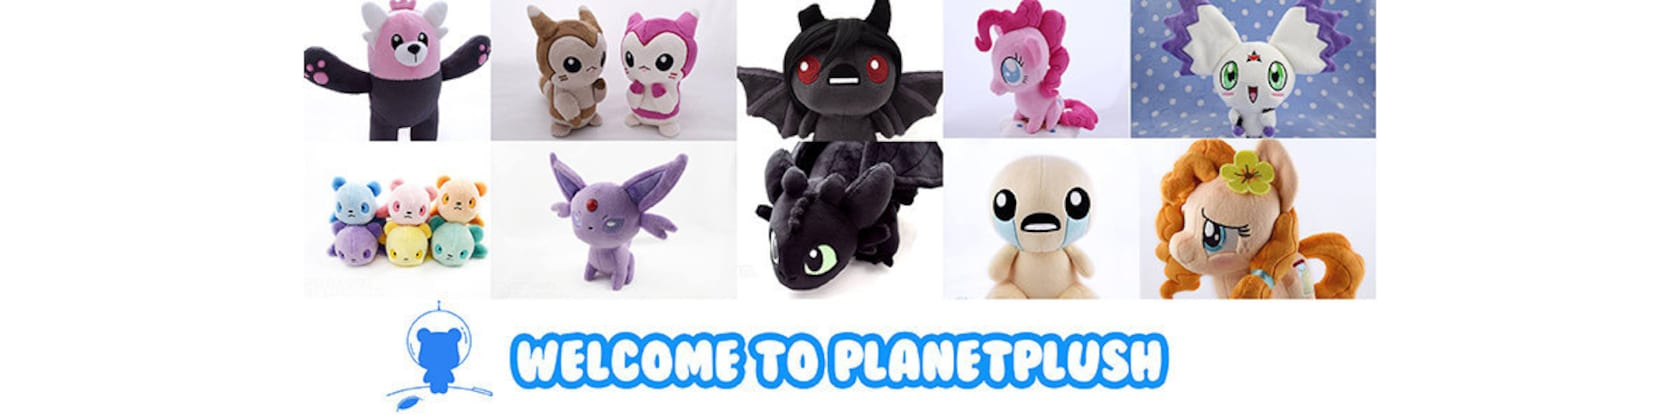 Professionally made handcrafted plush and patterns von PlanetPlush